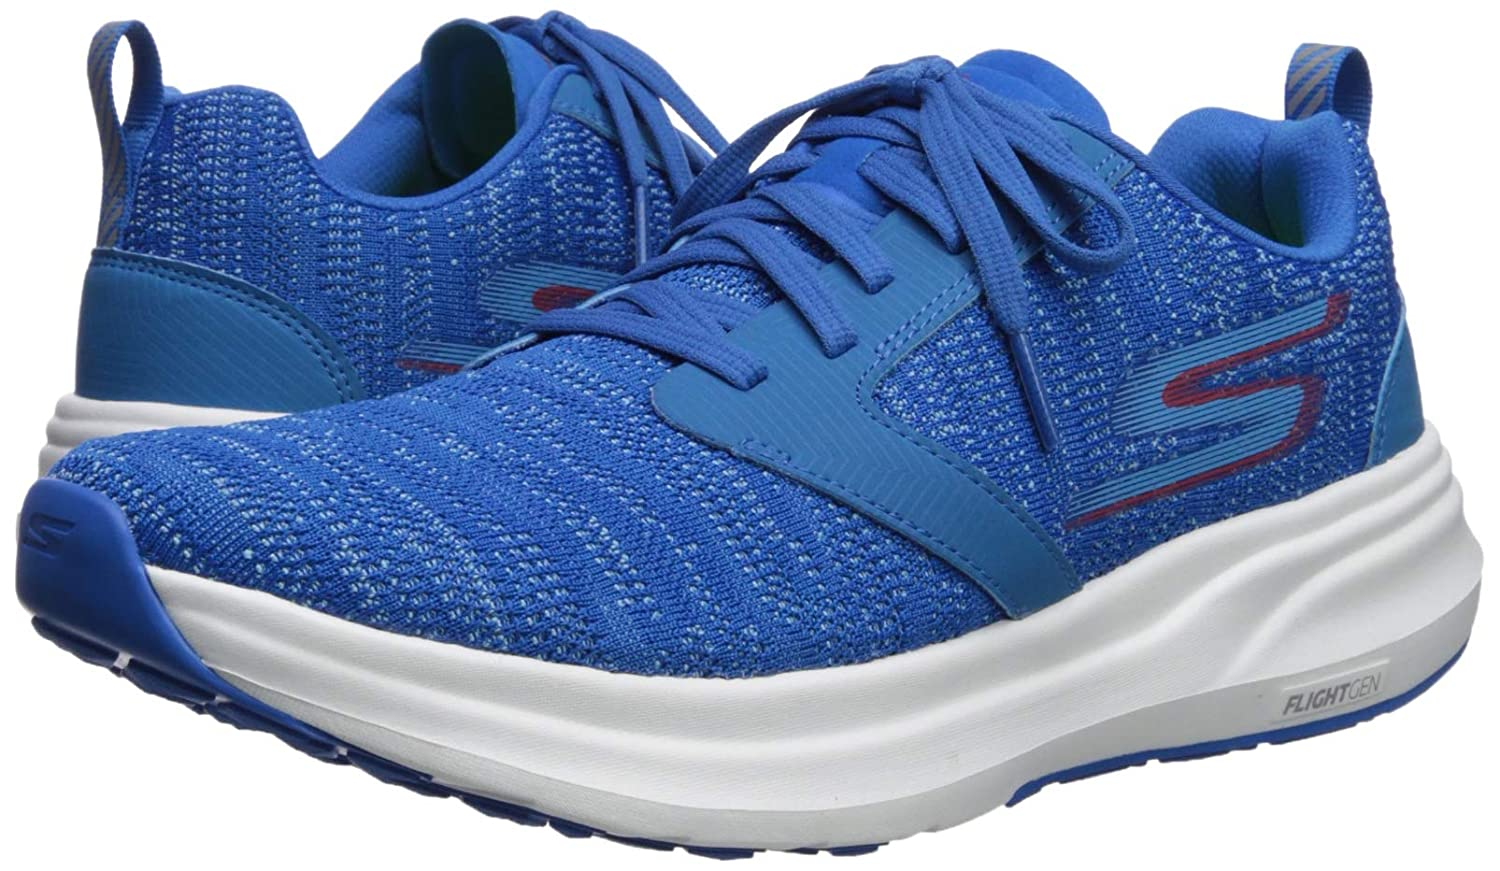 Skechers55200 - Go Run Ride 7 Herren, Blau Blau Blau (Royal rot), 40 EU D(M) c8f477